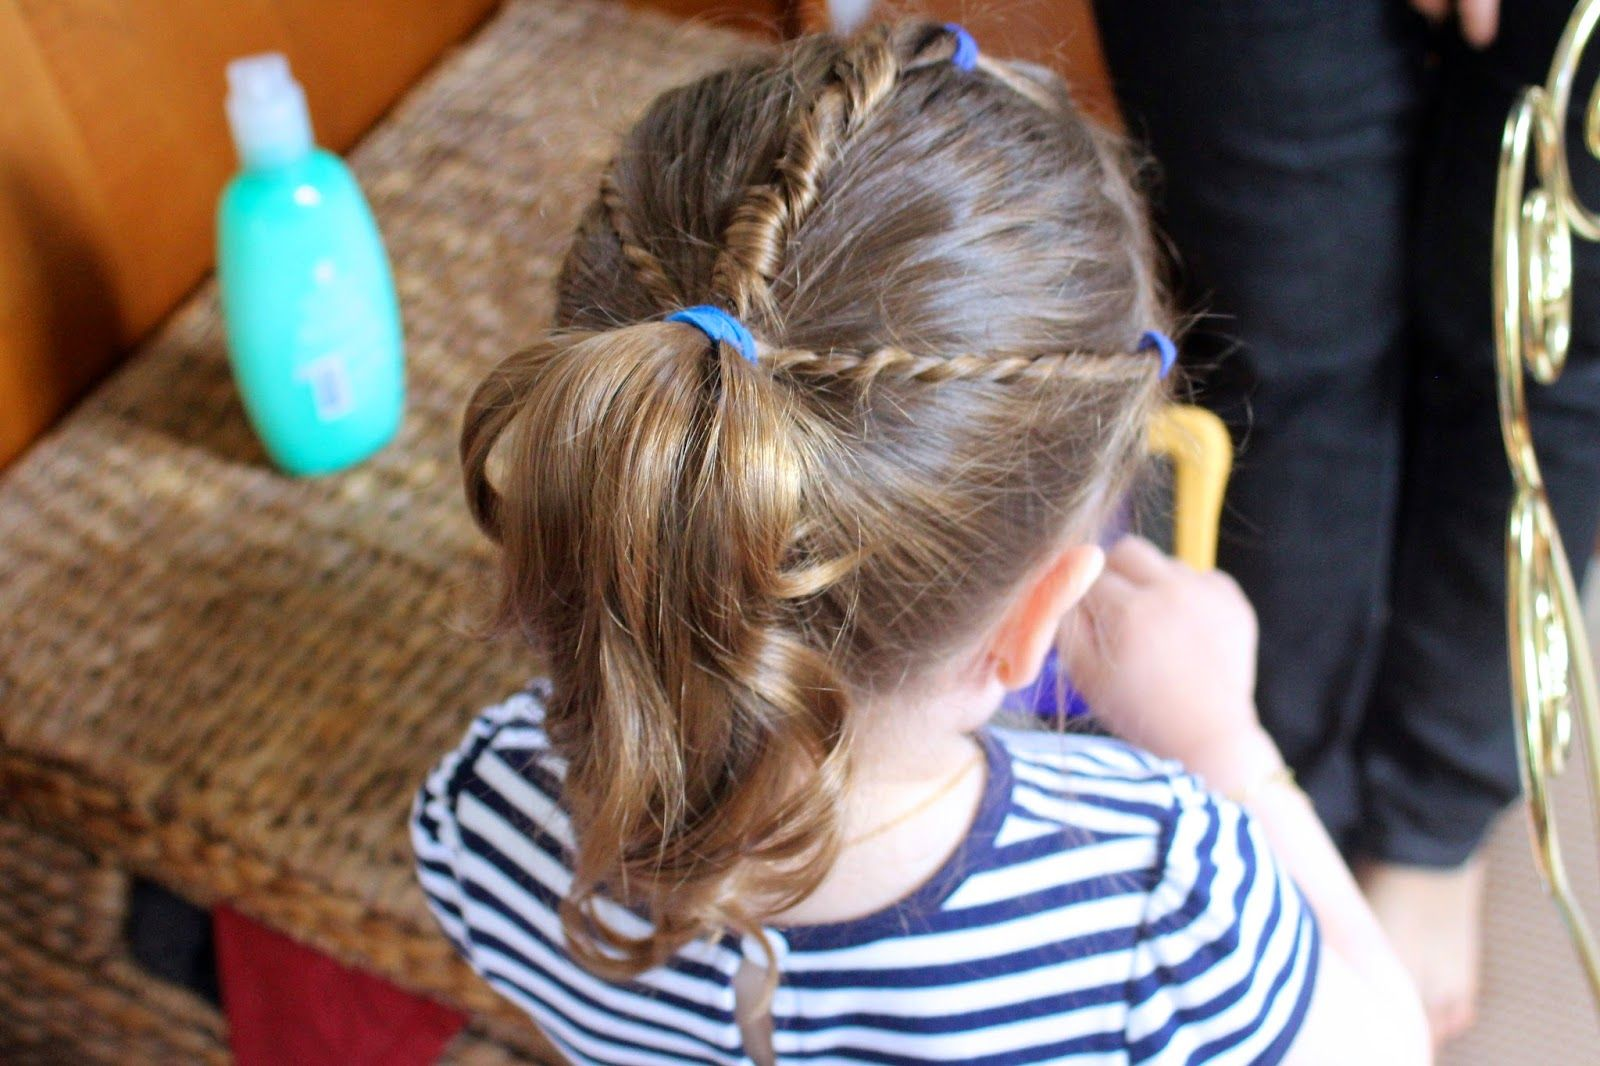 Toddler hair tutorial with johnsonus no more tangles johnsonus